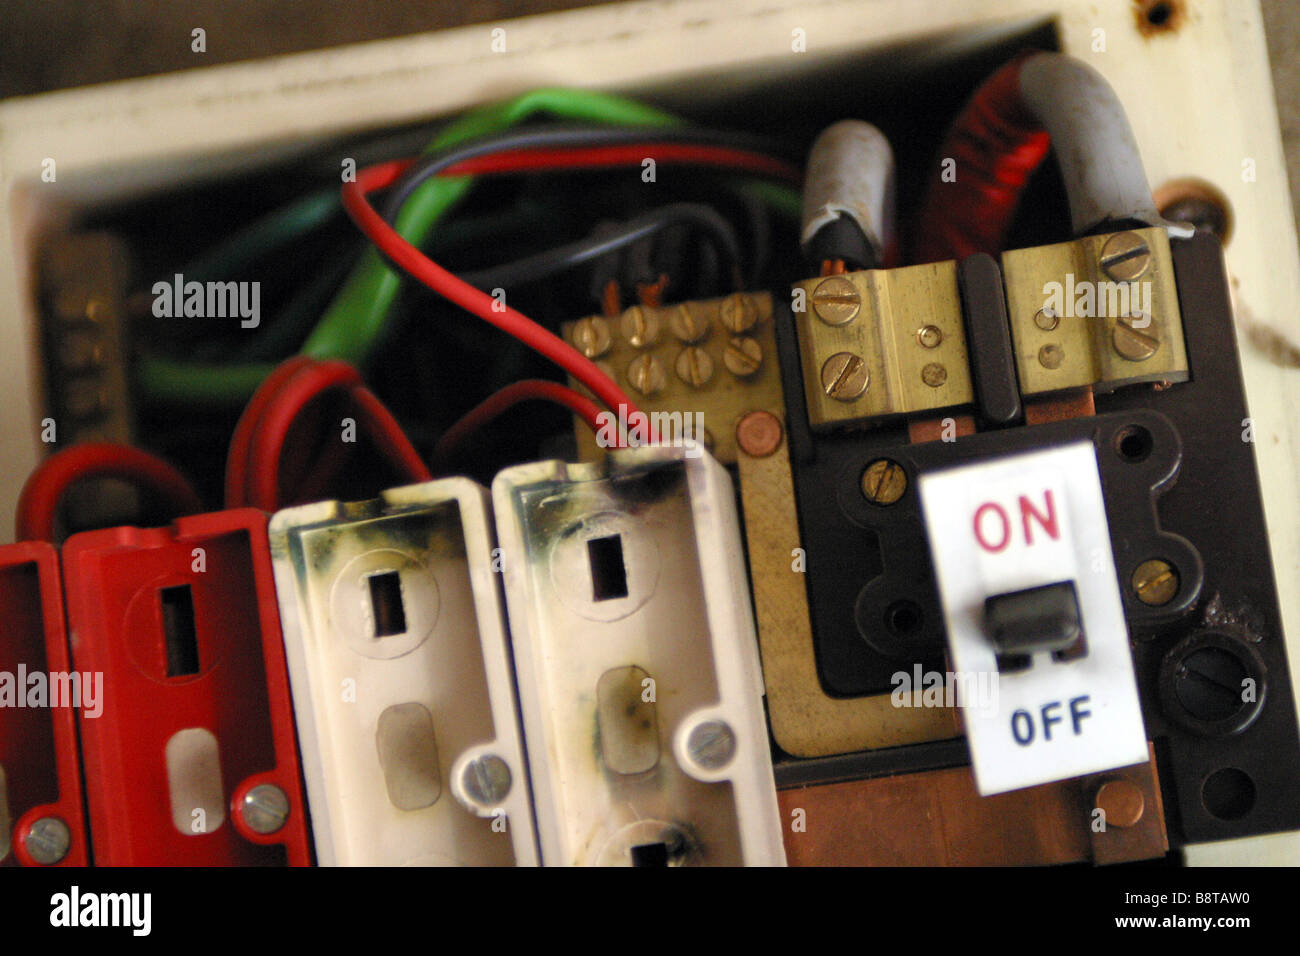 old house fuse box wiring diagrams hubs House Breaker Box consumer unit box electrical fuse box old wire fuse type in a 1970\u0027s plug fuse box old house fuse box